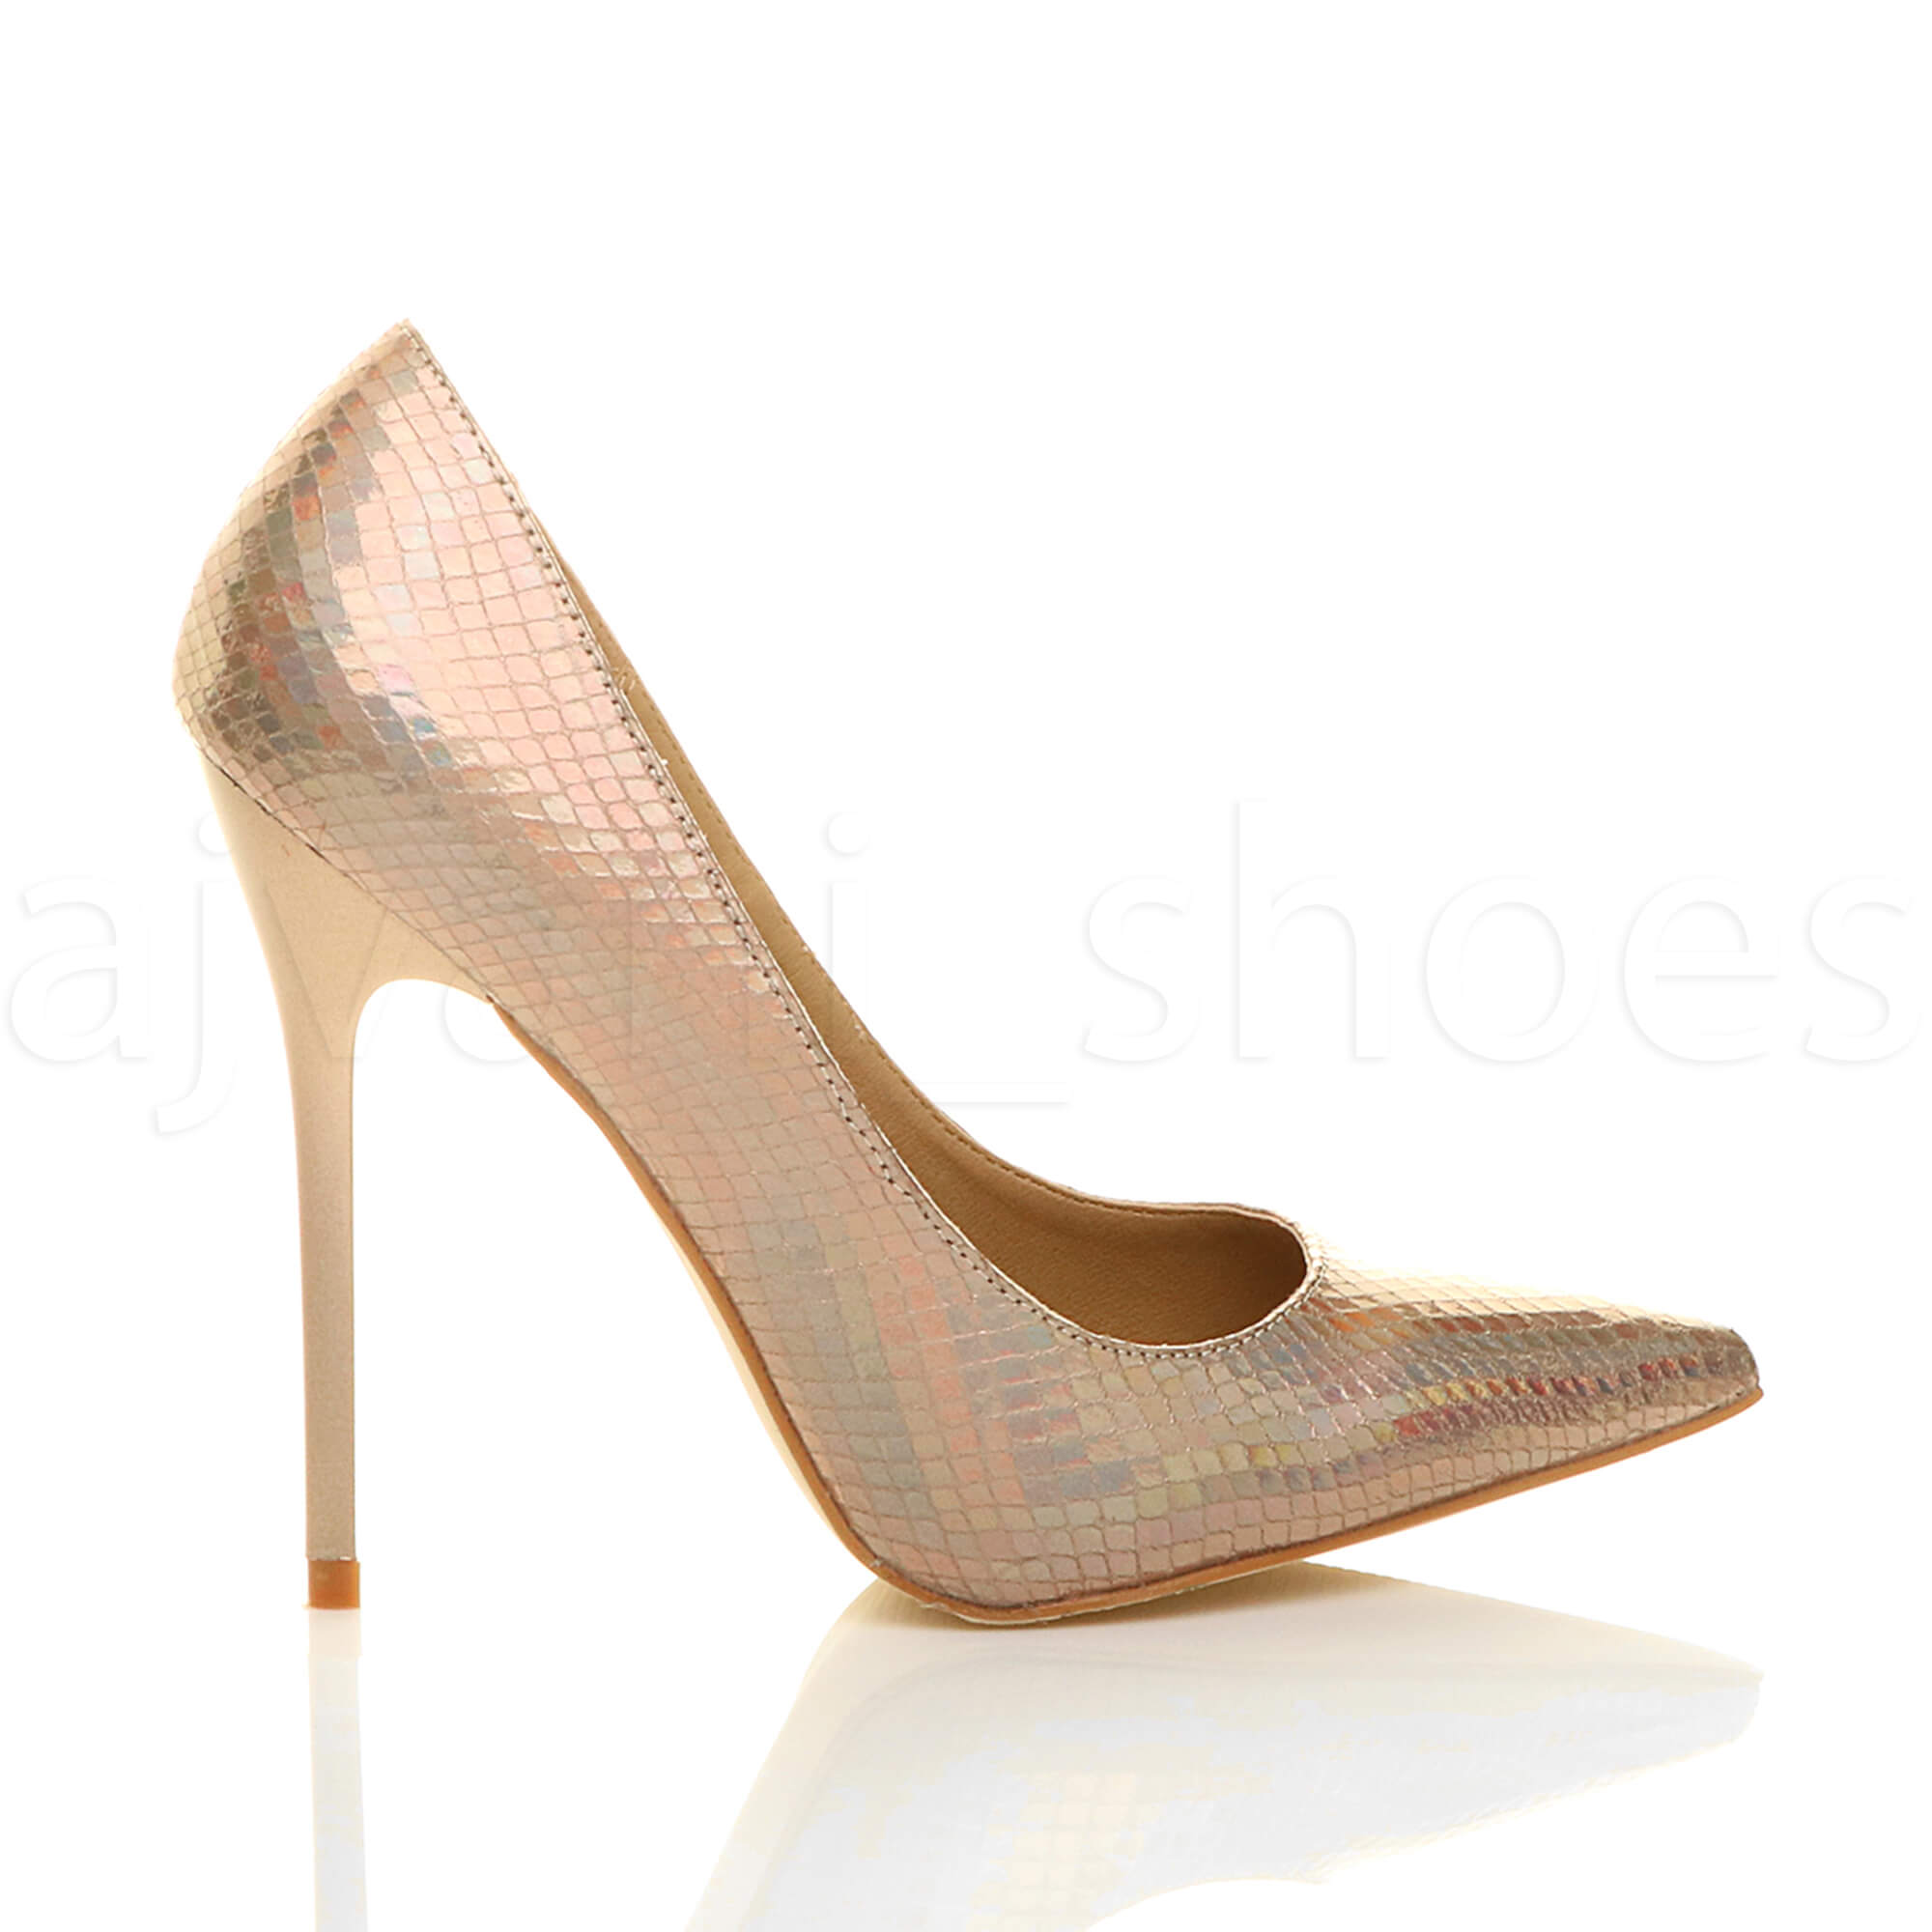 WOMENS-LADIES-HIGH-HEEL-POINTED-CONTRAST-COURT-SMART-PARTY-WORK-SHOES-PUMPS-SIZE thumbnail 58